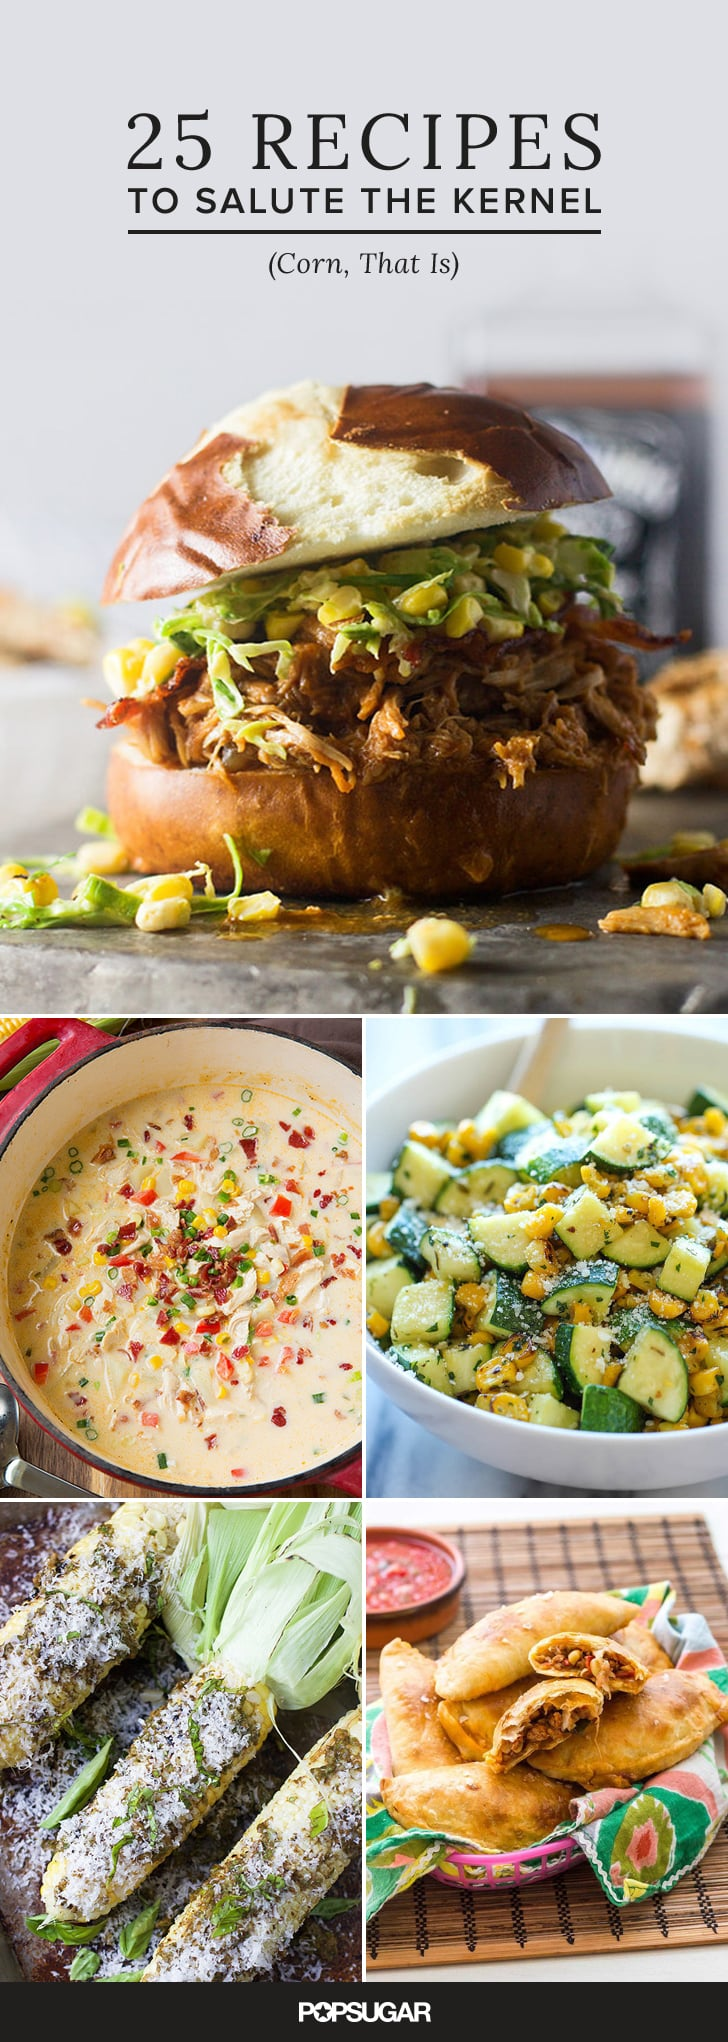 25 Recipes to Salute the Kernel (Corn, That Is)